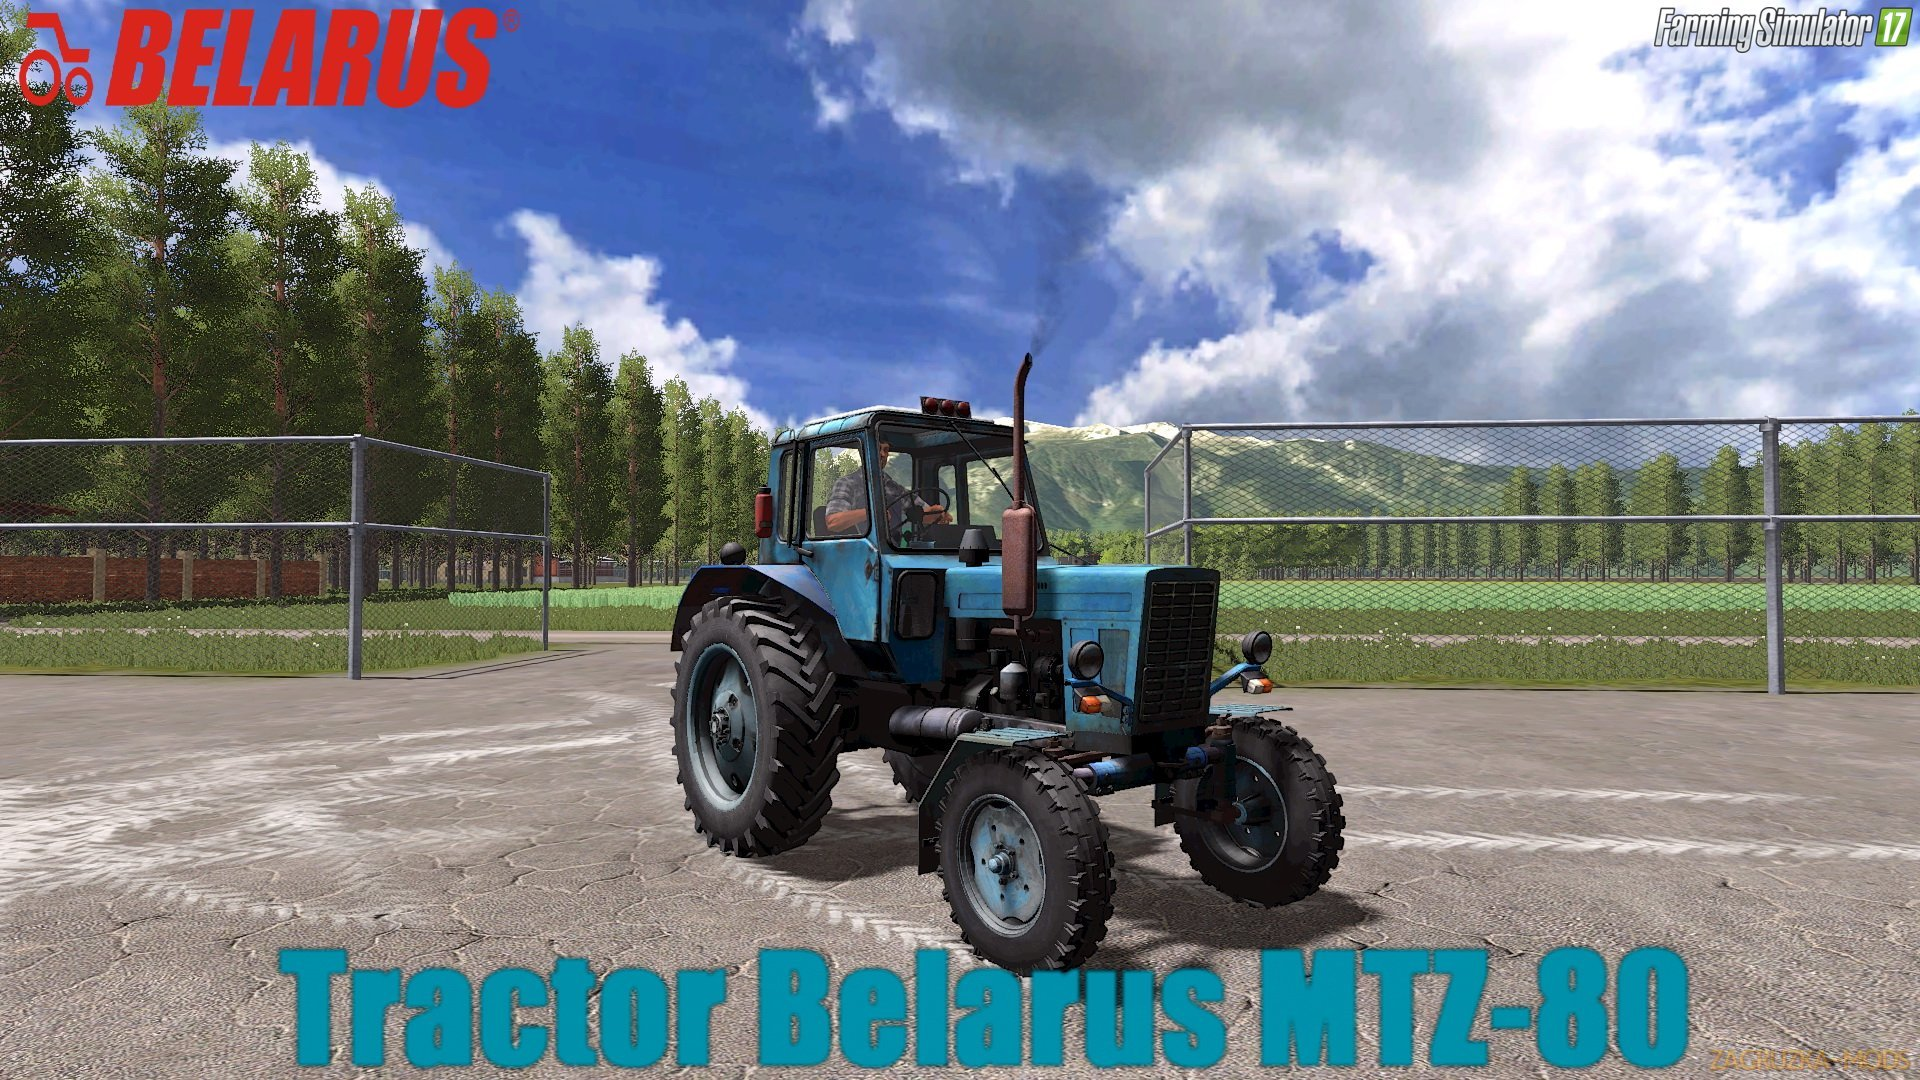 Belarus MTZ-80 v1.0 by Nikolai44 for FS 17